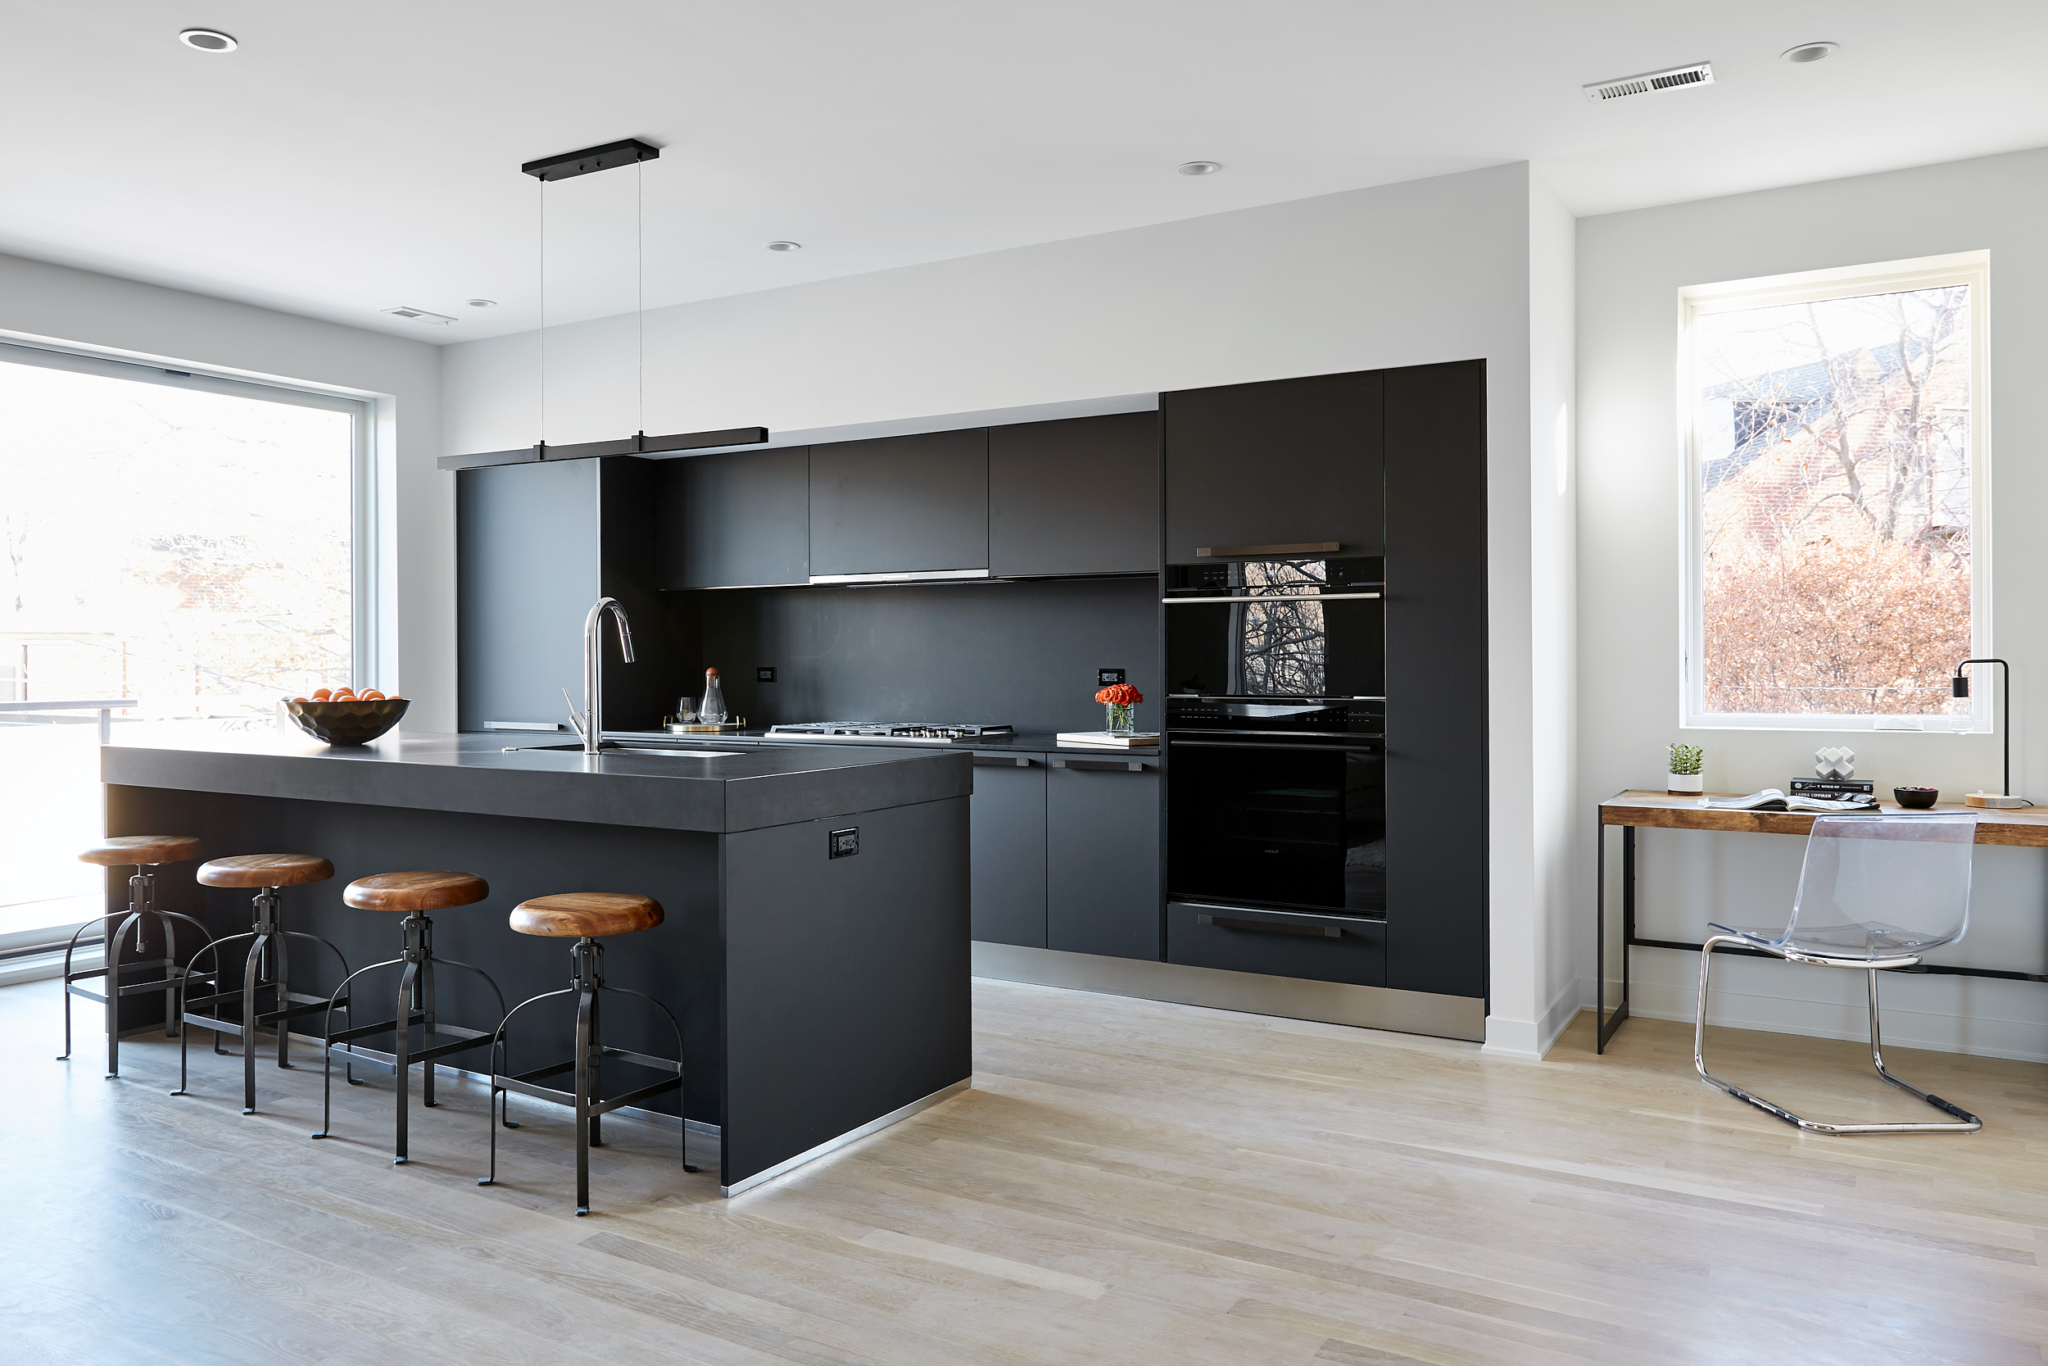 530Dickens_Kitchen_A_2-scaled.jpg